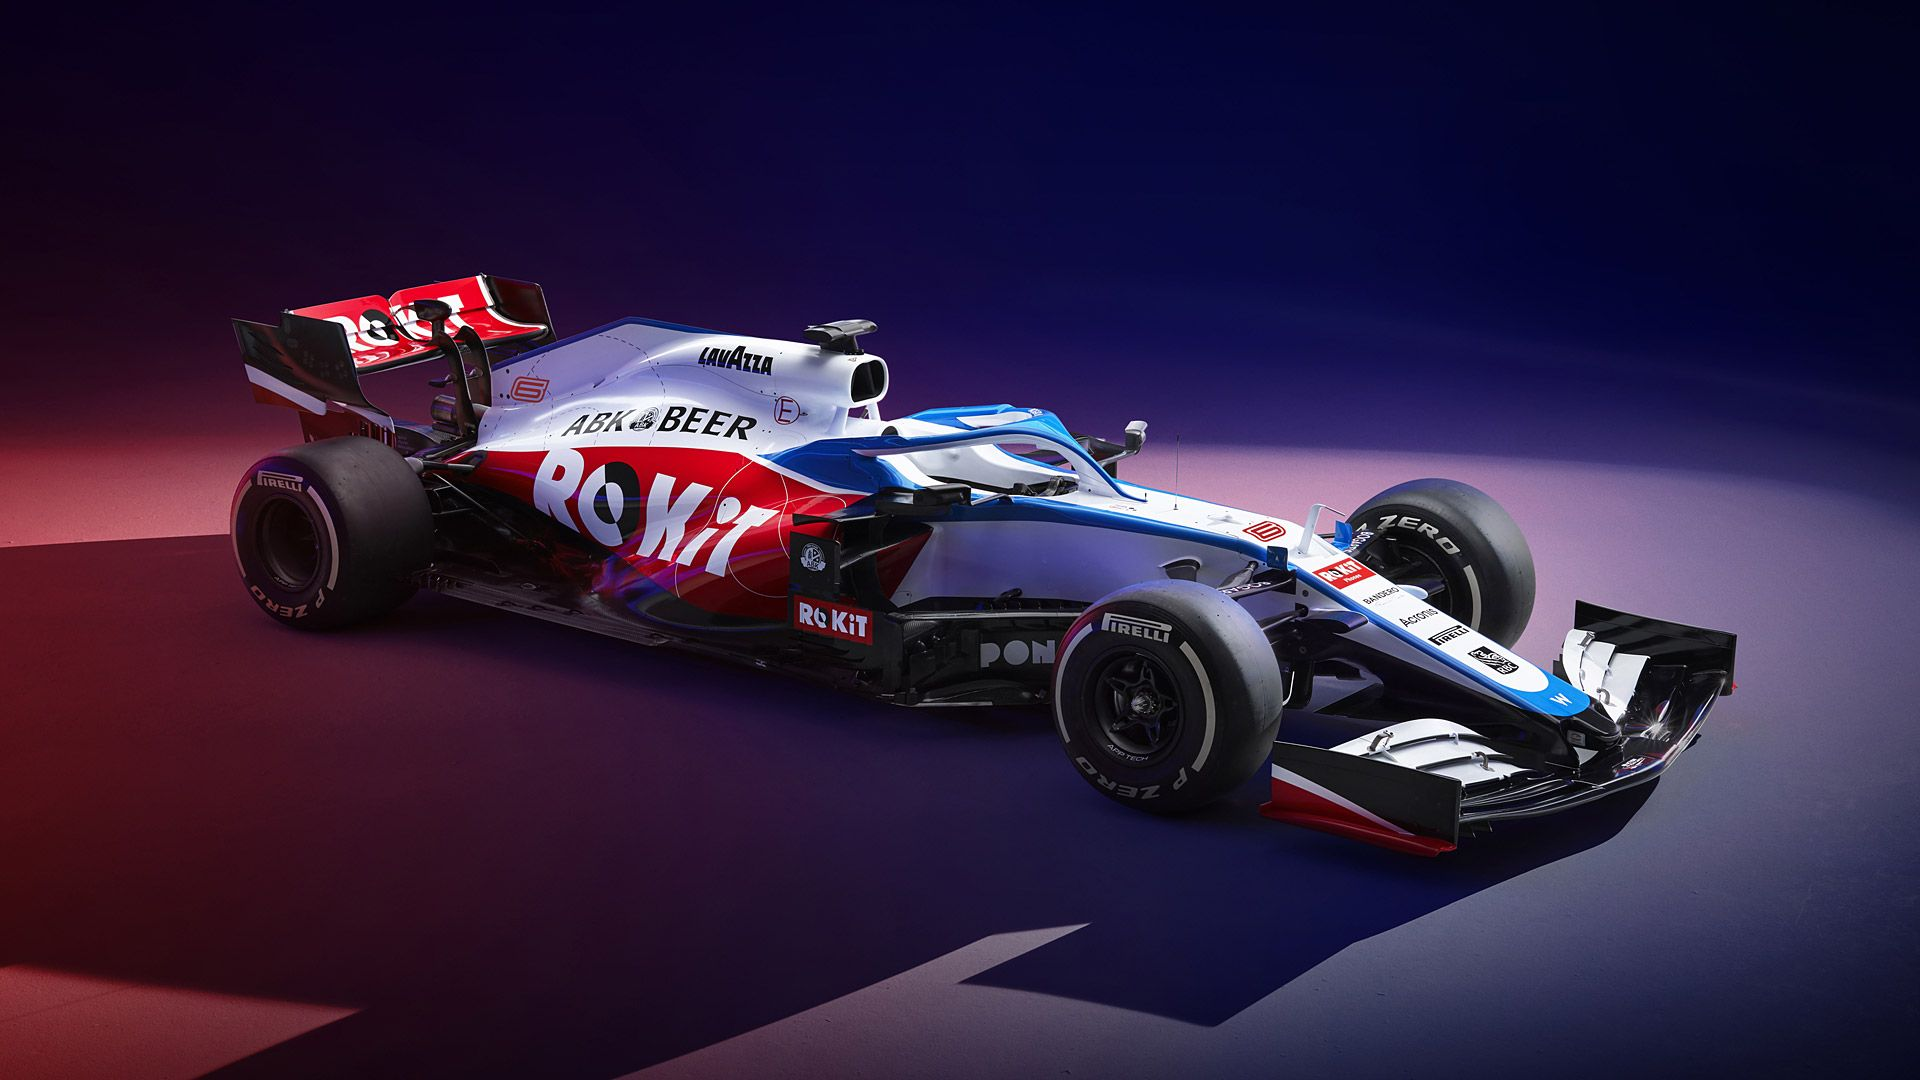 2020 Williams Fw43 Wallpapers Wsupercars Williams F1 Formula 1 Race Cars